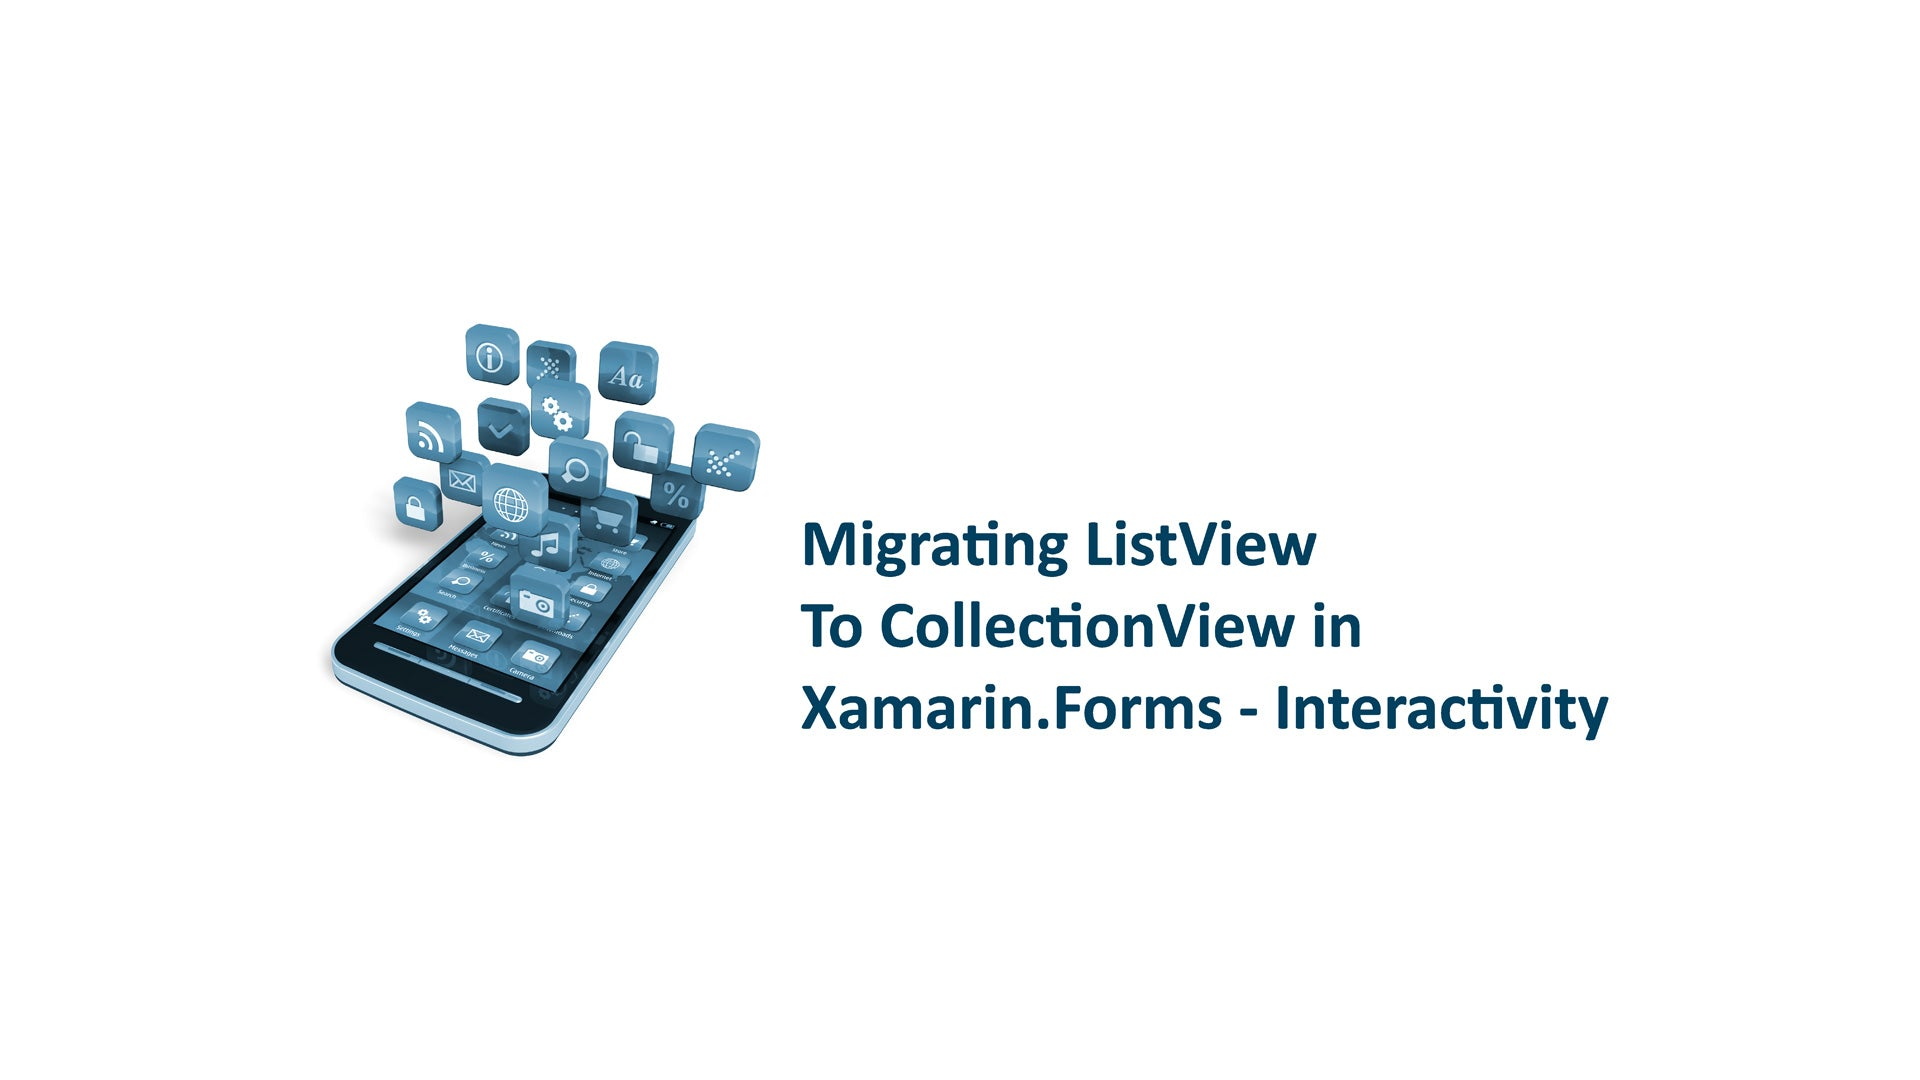 Migrating ListView To CollectionView in Xamarin.Forms - Interactivity